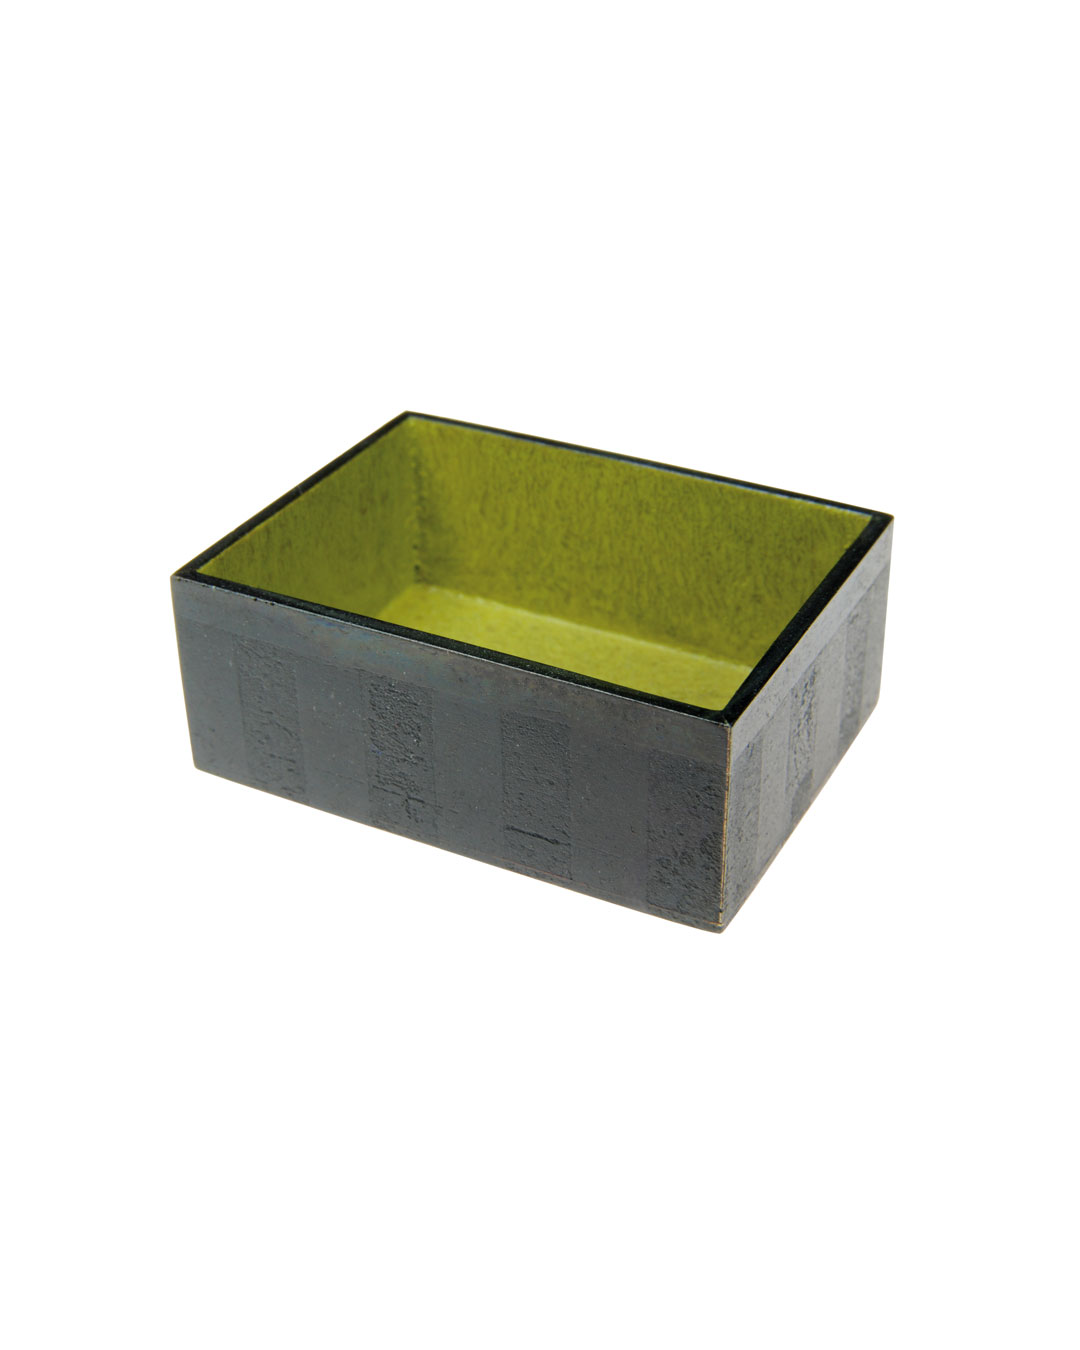 Tore Svensson, Box, 2009, brooch; etched and painted steel, 40 x 30 x 15 mm, €560